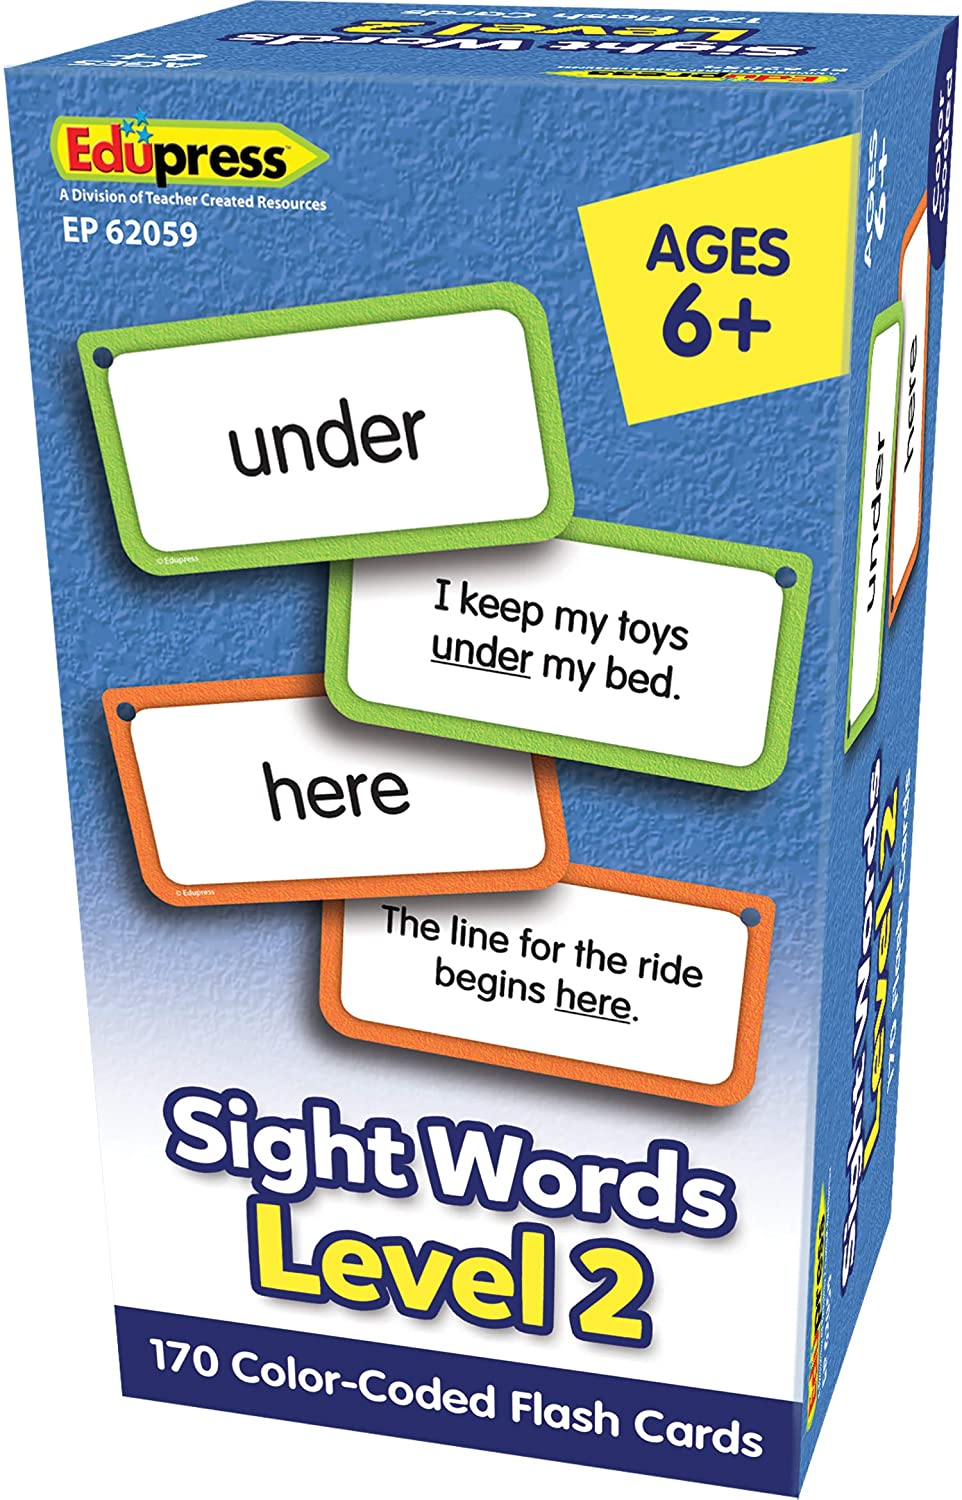 Teacher Created Resources Sight Words Flash Cards - Level 2 (EP62059)